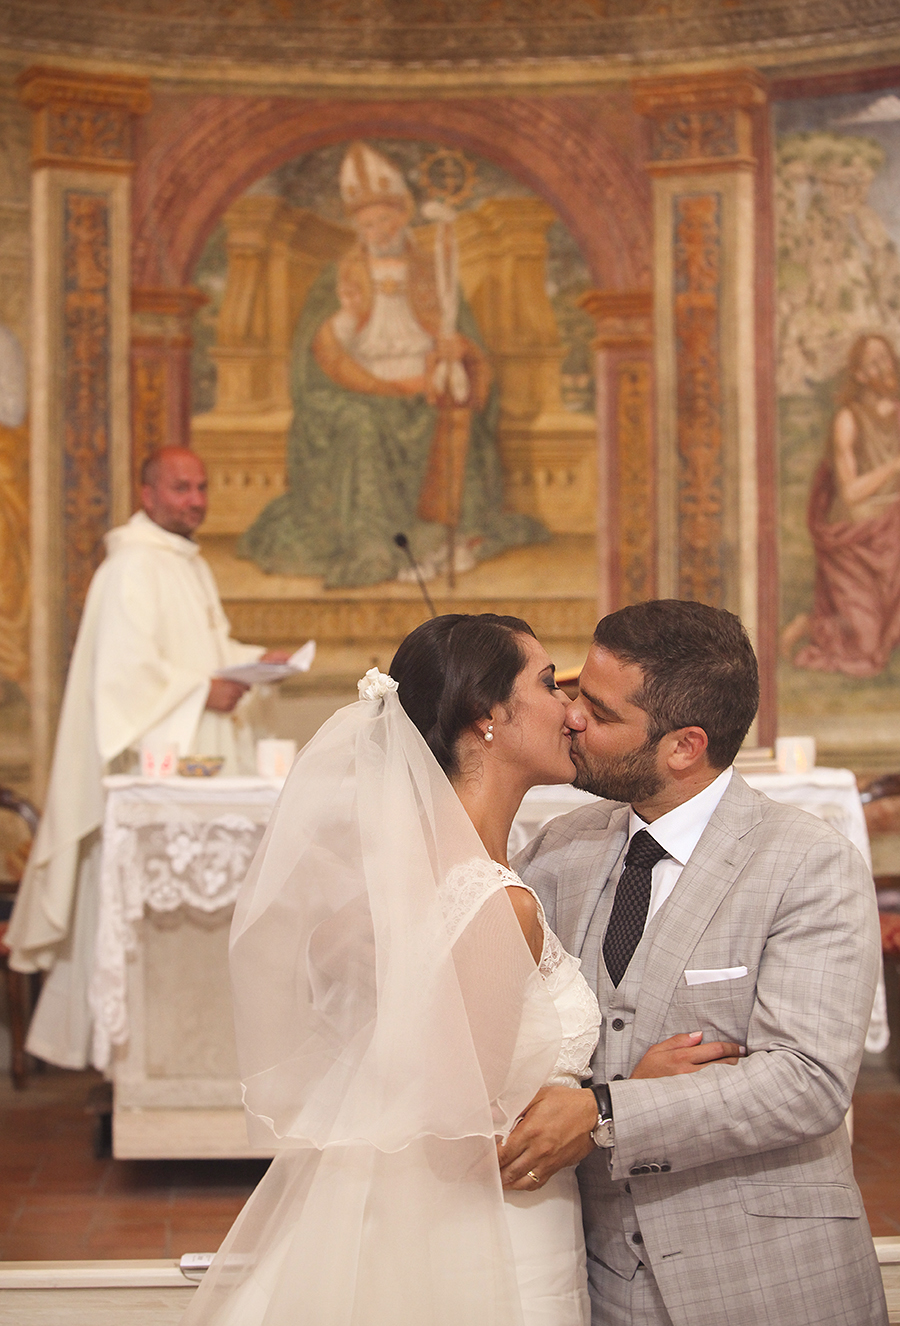 italy wedding photography by kurt ahs . alex + silvia ( washington united states ) . 7359.jpg